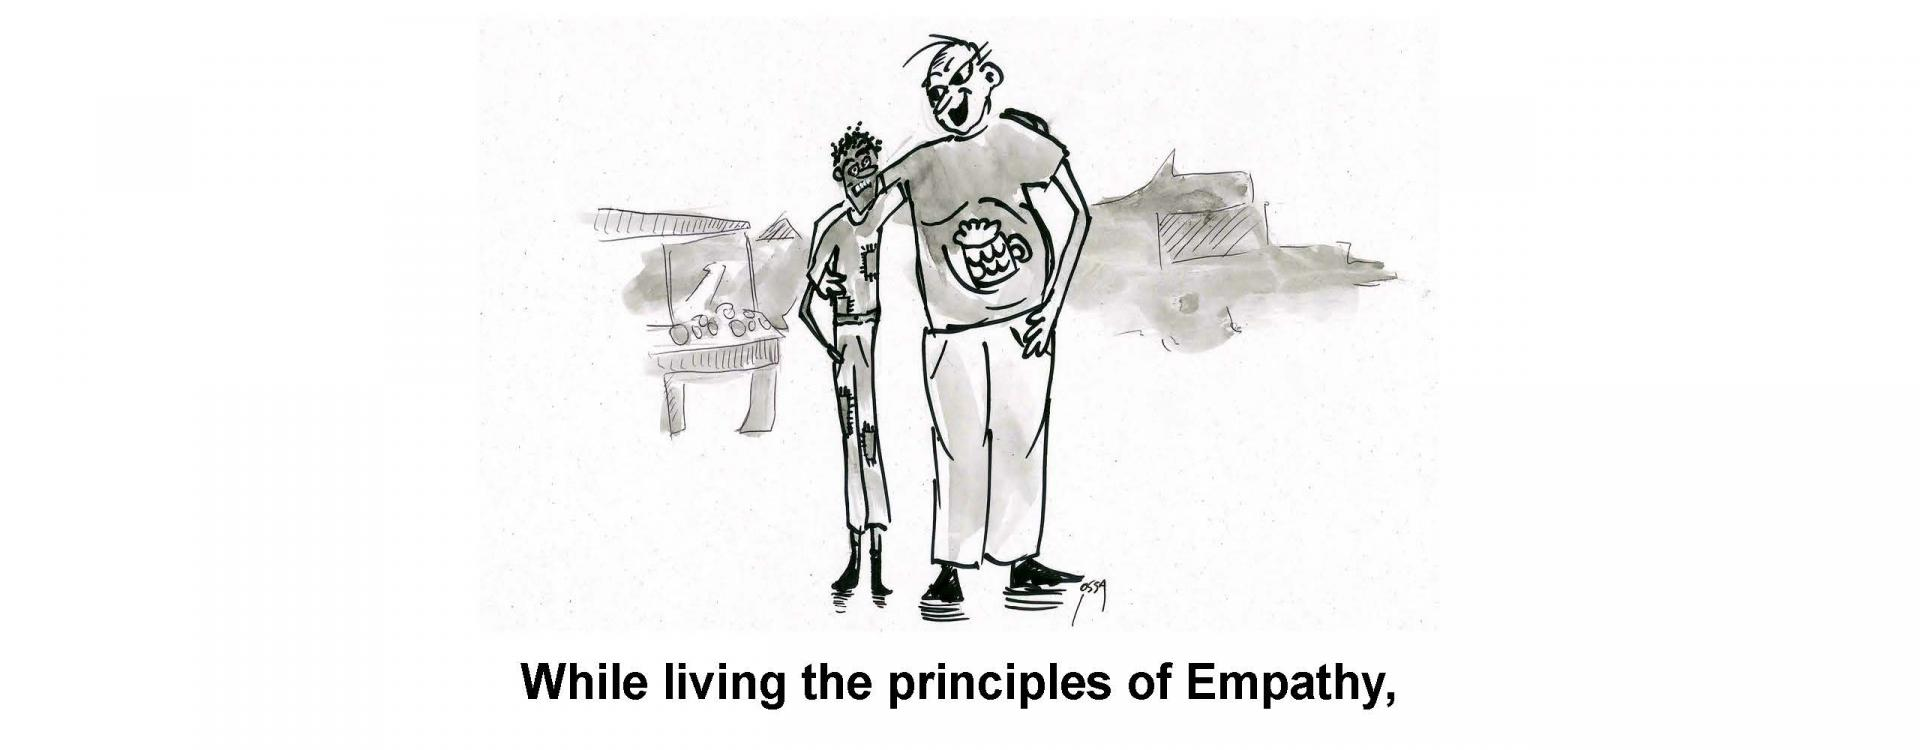 While living the principles of Empathy,